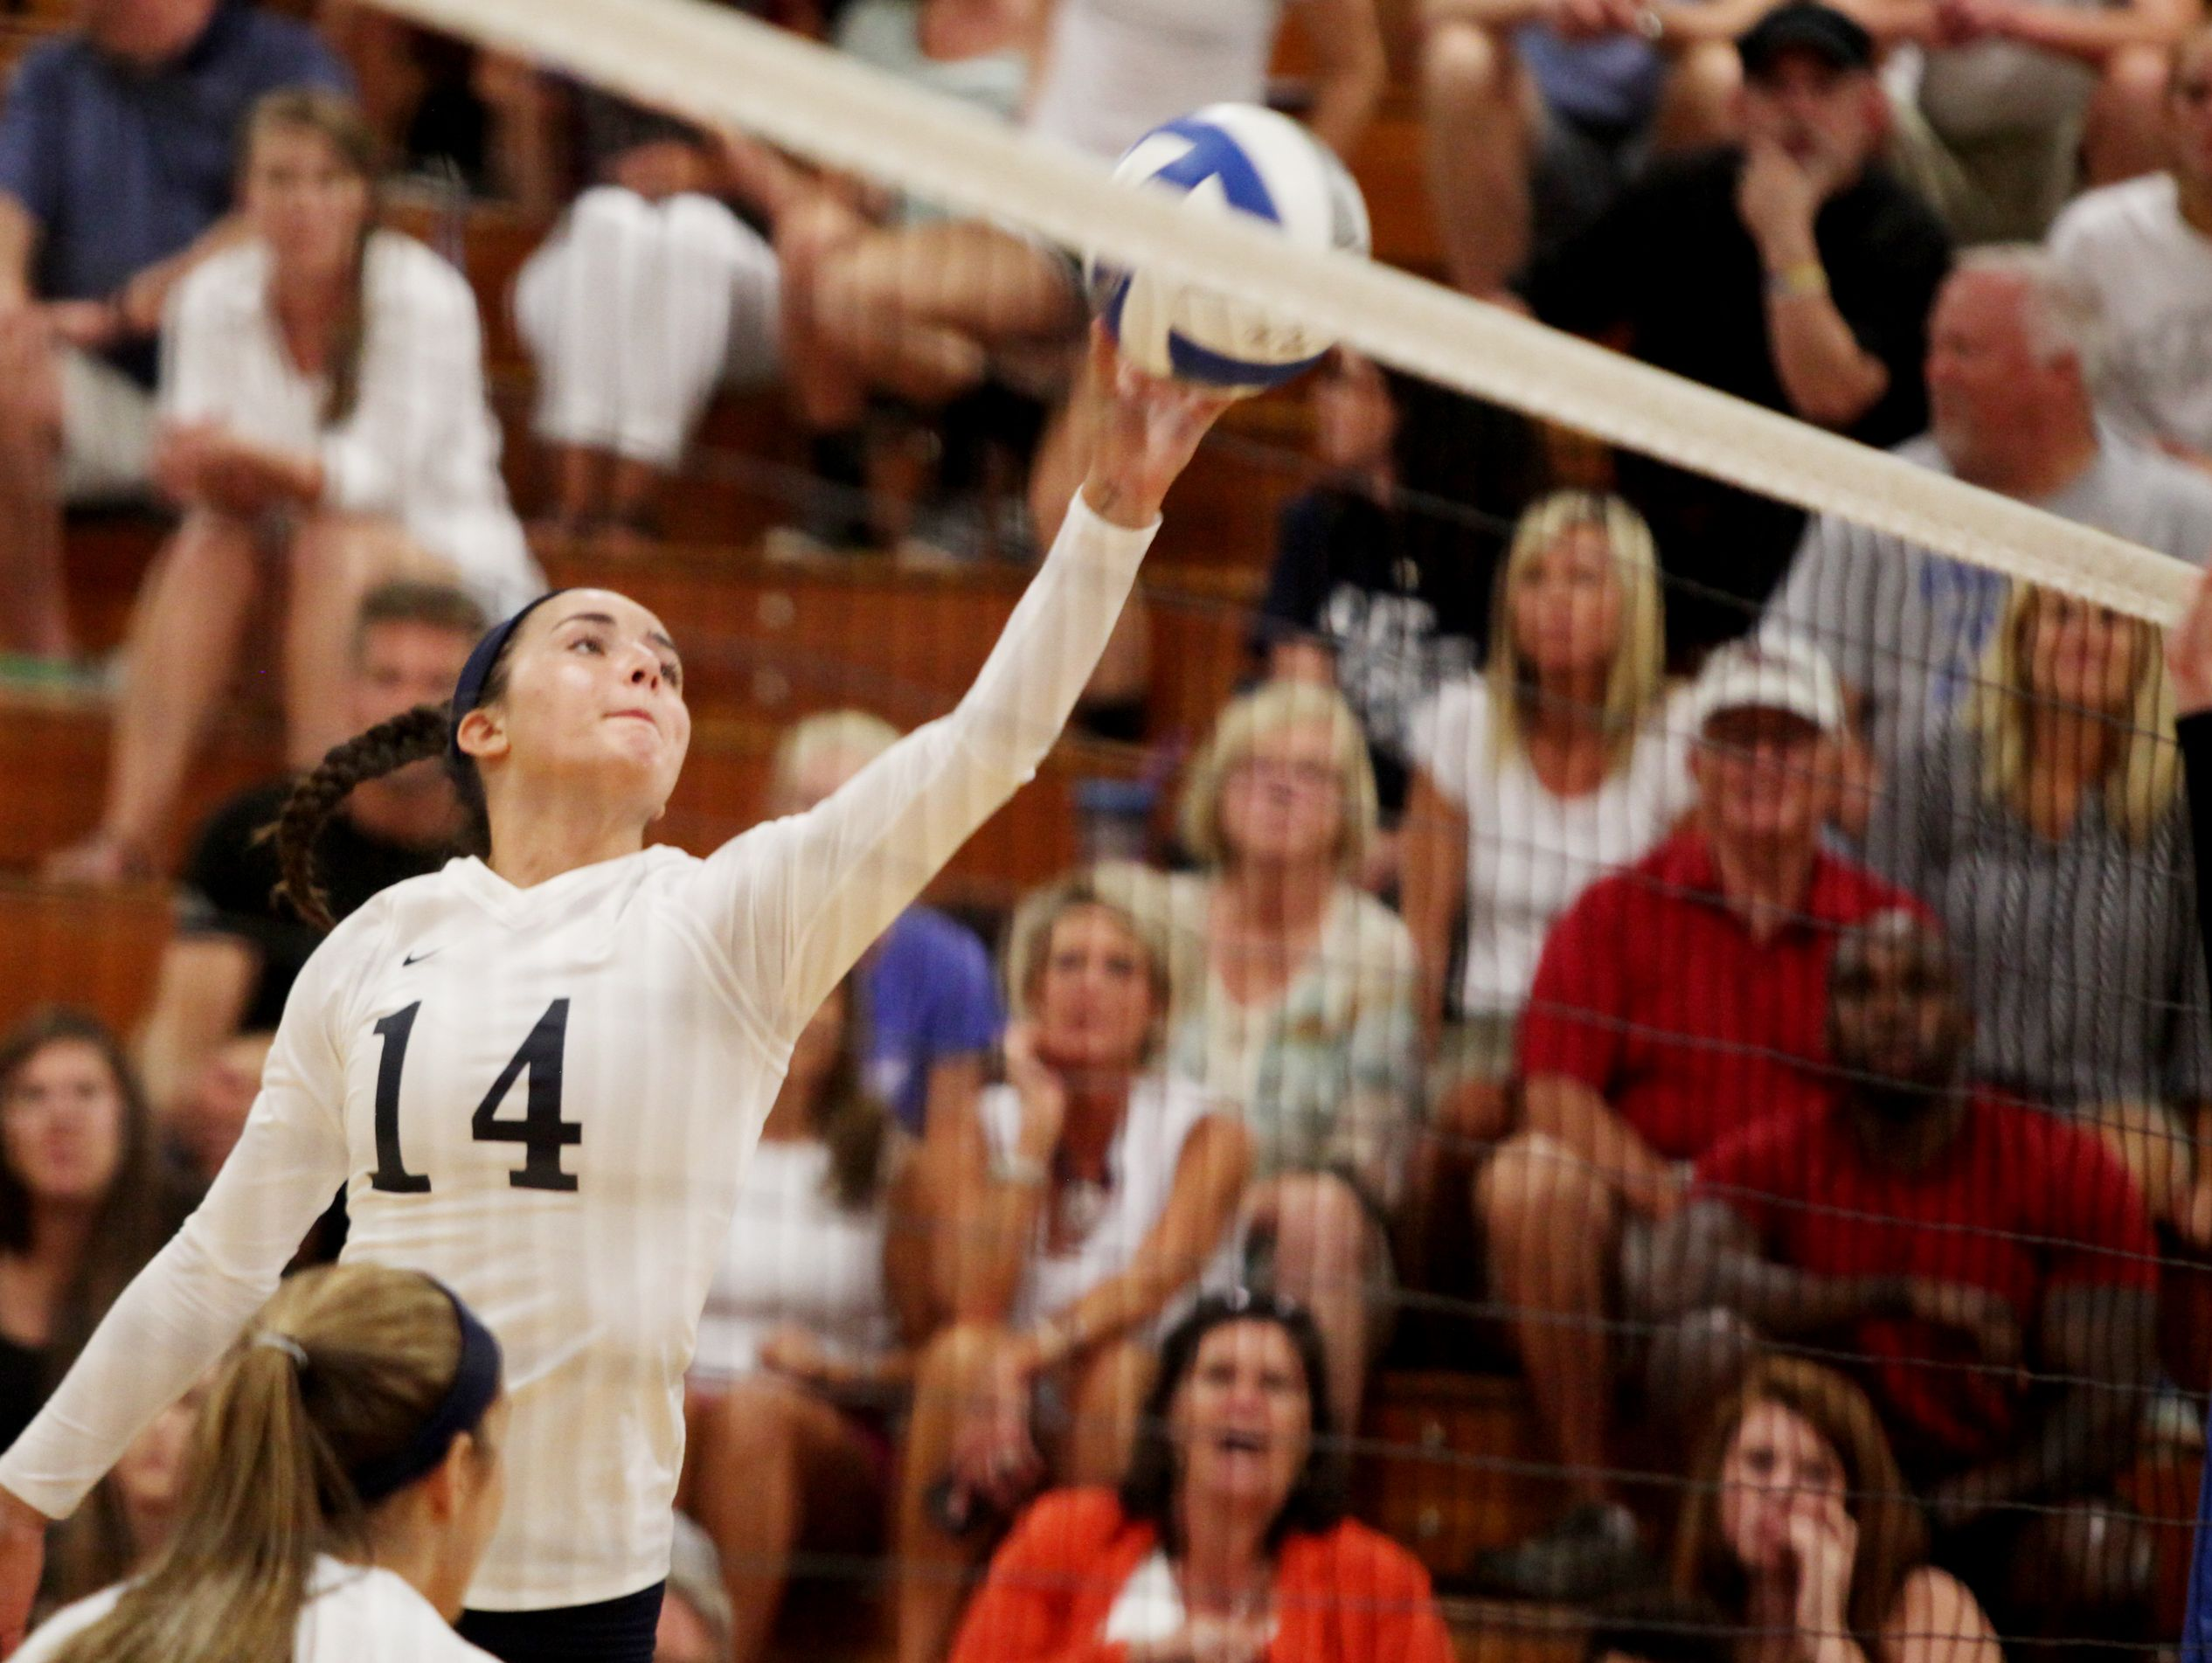 R.E. Lee's MacKensie Bowles taps the ball over the net during Tuesday night's game against Buffalo Gap in Staunton. Lee won in straight sets.